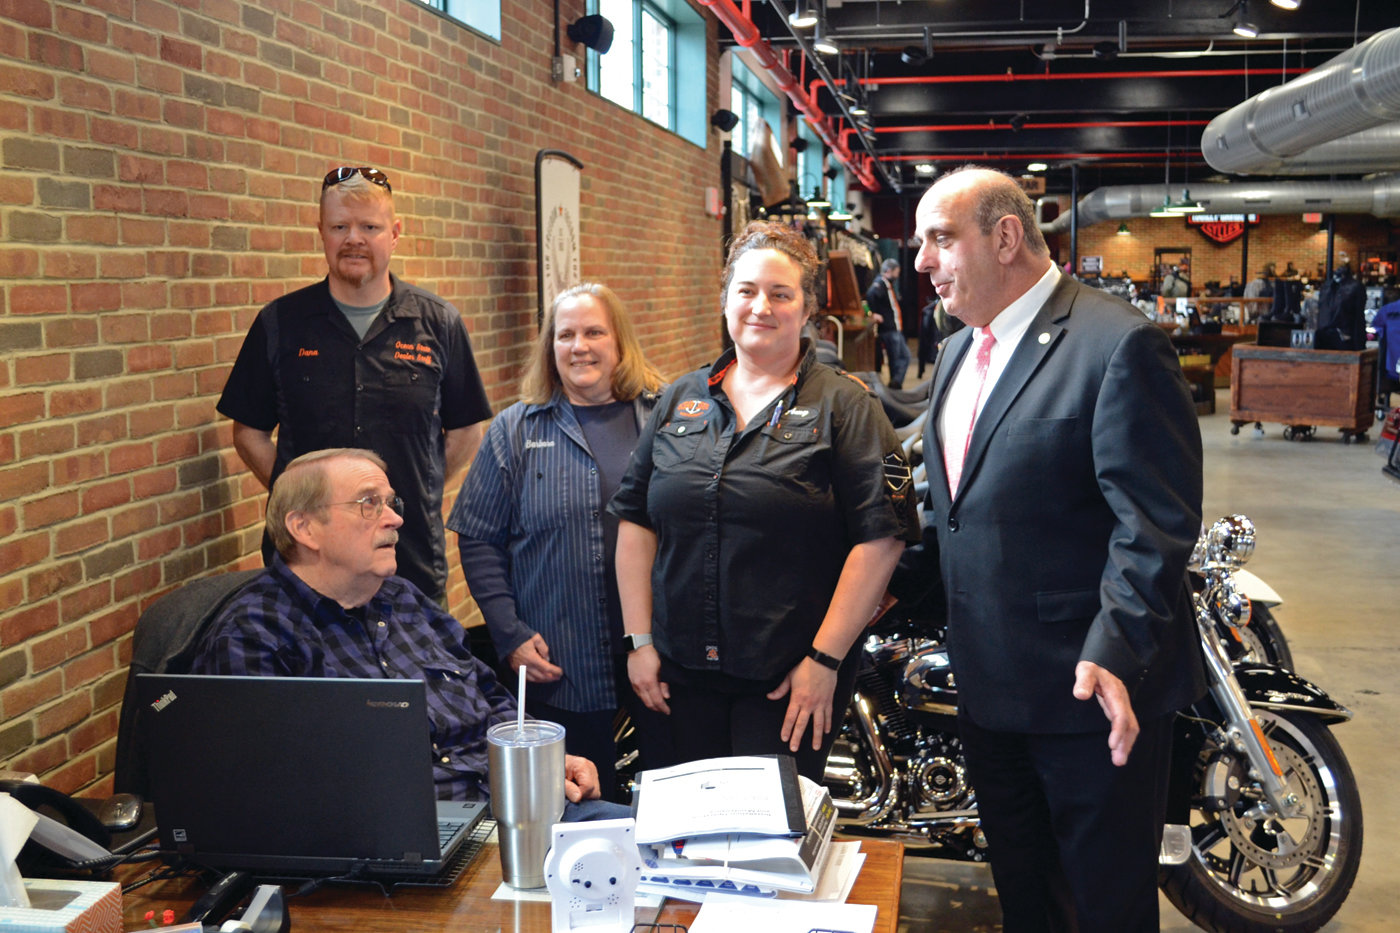 FAMILY BUSINESS: First generation owners Russ and Barbara Hamptom pose with their second generation, daughter Amy Bishop (owner) and her husband Dana, along with Mayor Solomon during his visit to Russ' Ocean State Harley-Davidson on Tuesday.